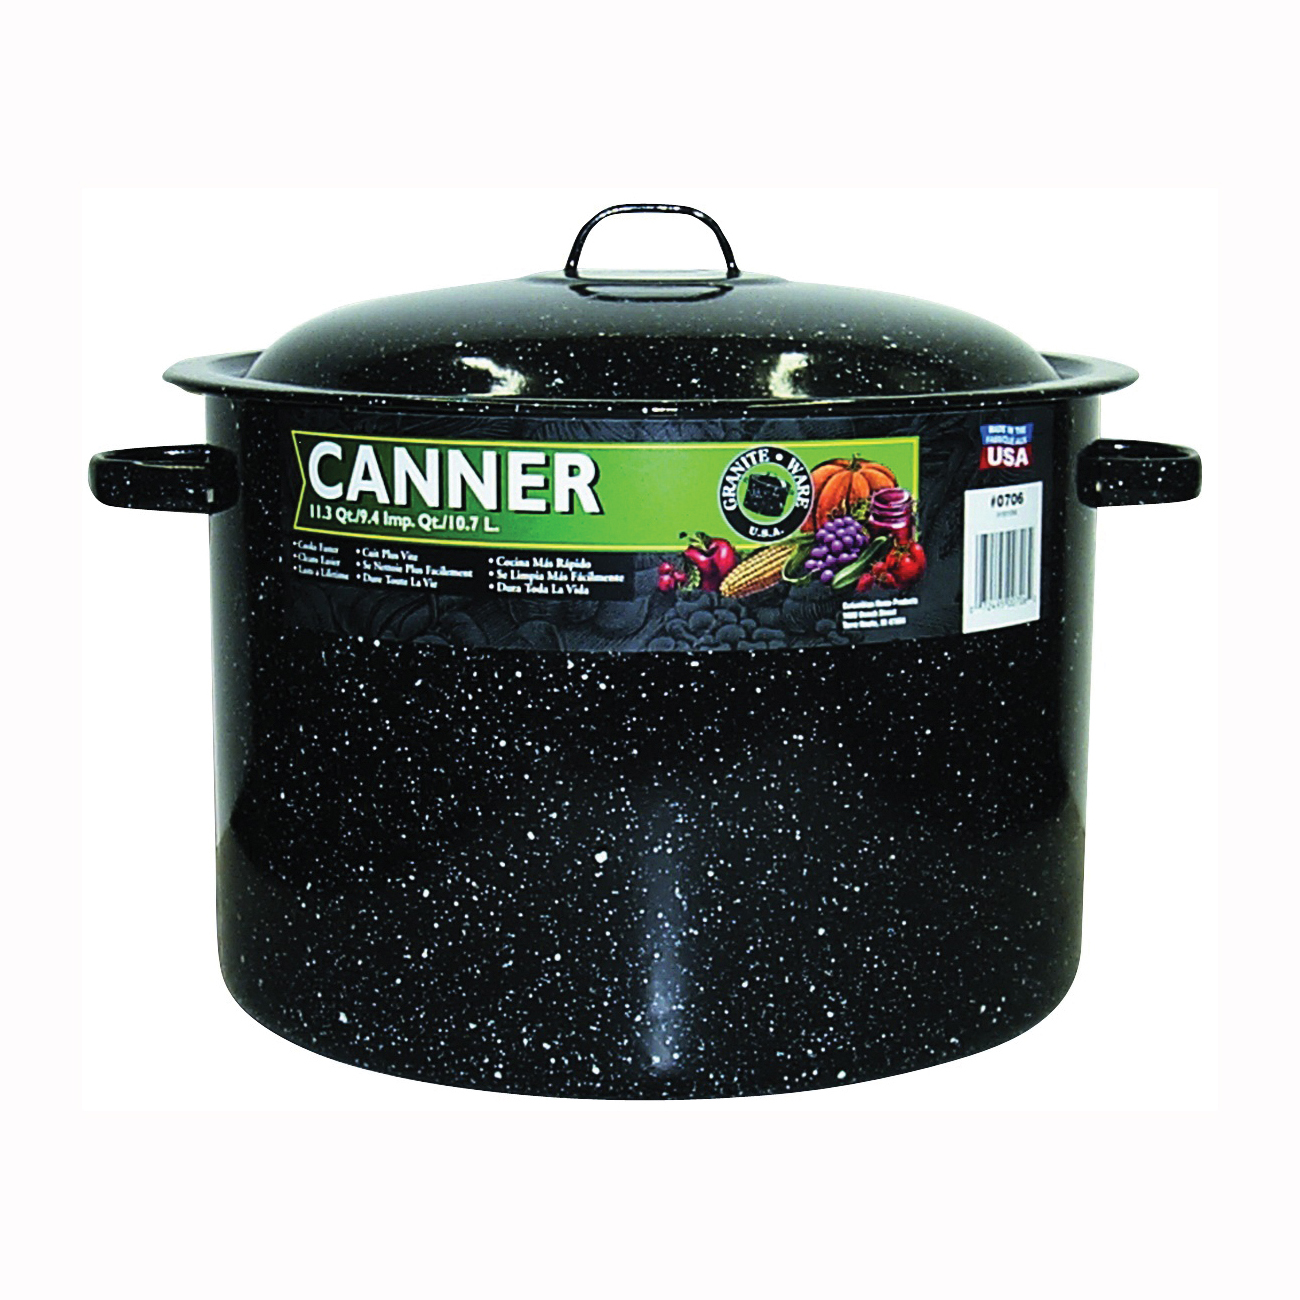 Picture of Granite Ware F0706-6 Mini Canner, 12 qt Capacity, Steel, Porcelain Enamel-Coated